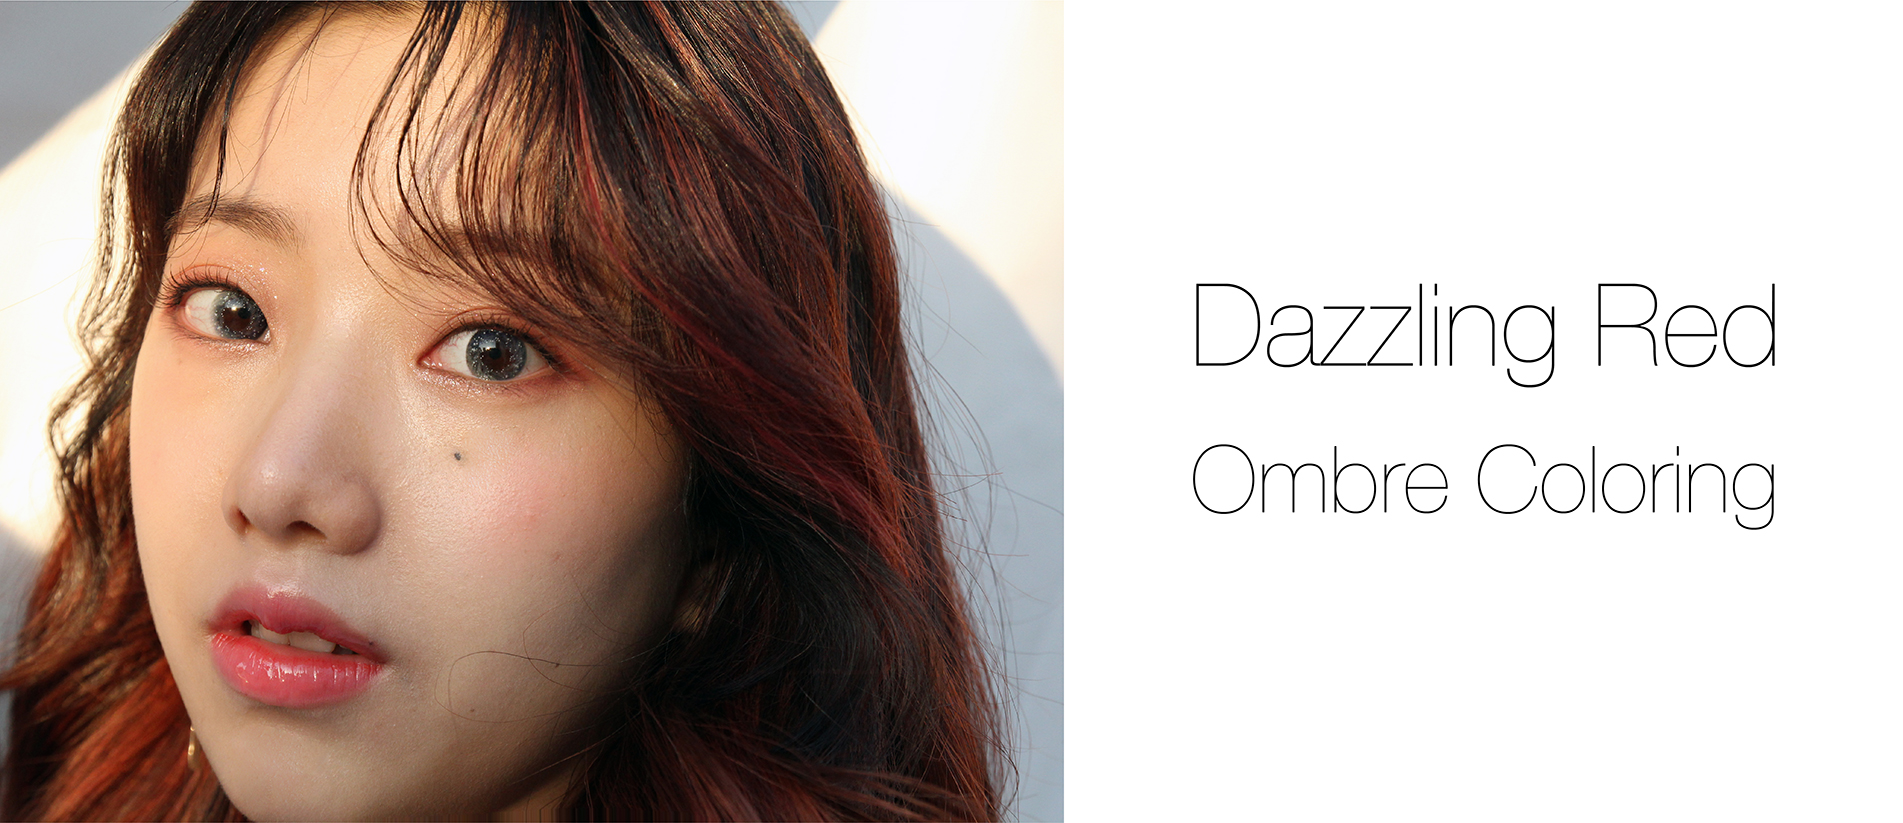 Dazzling Red Ombre Coloring